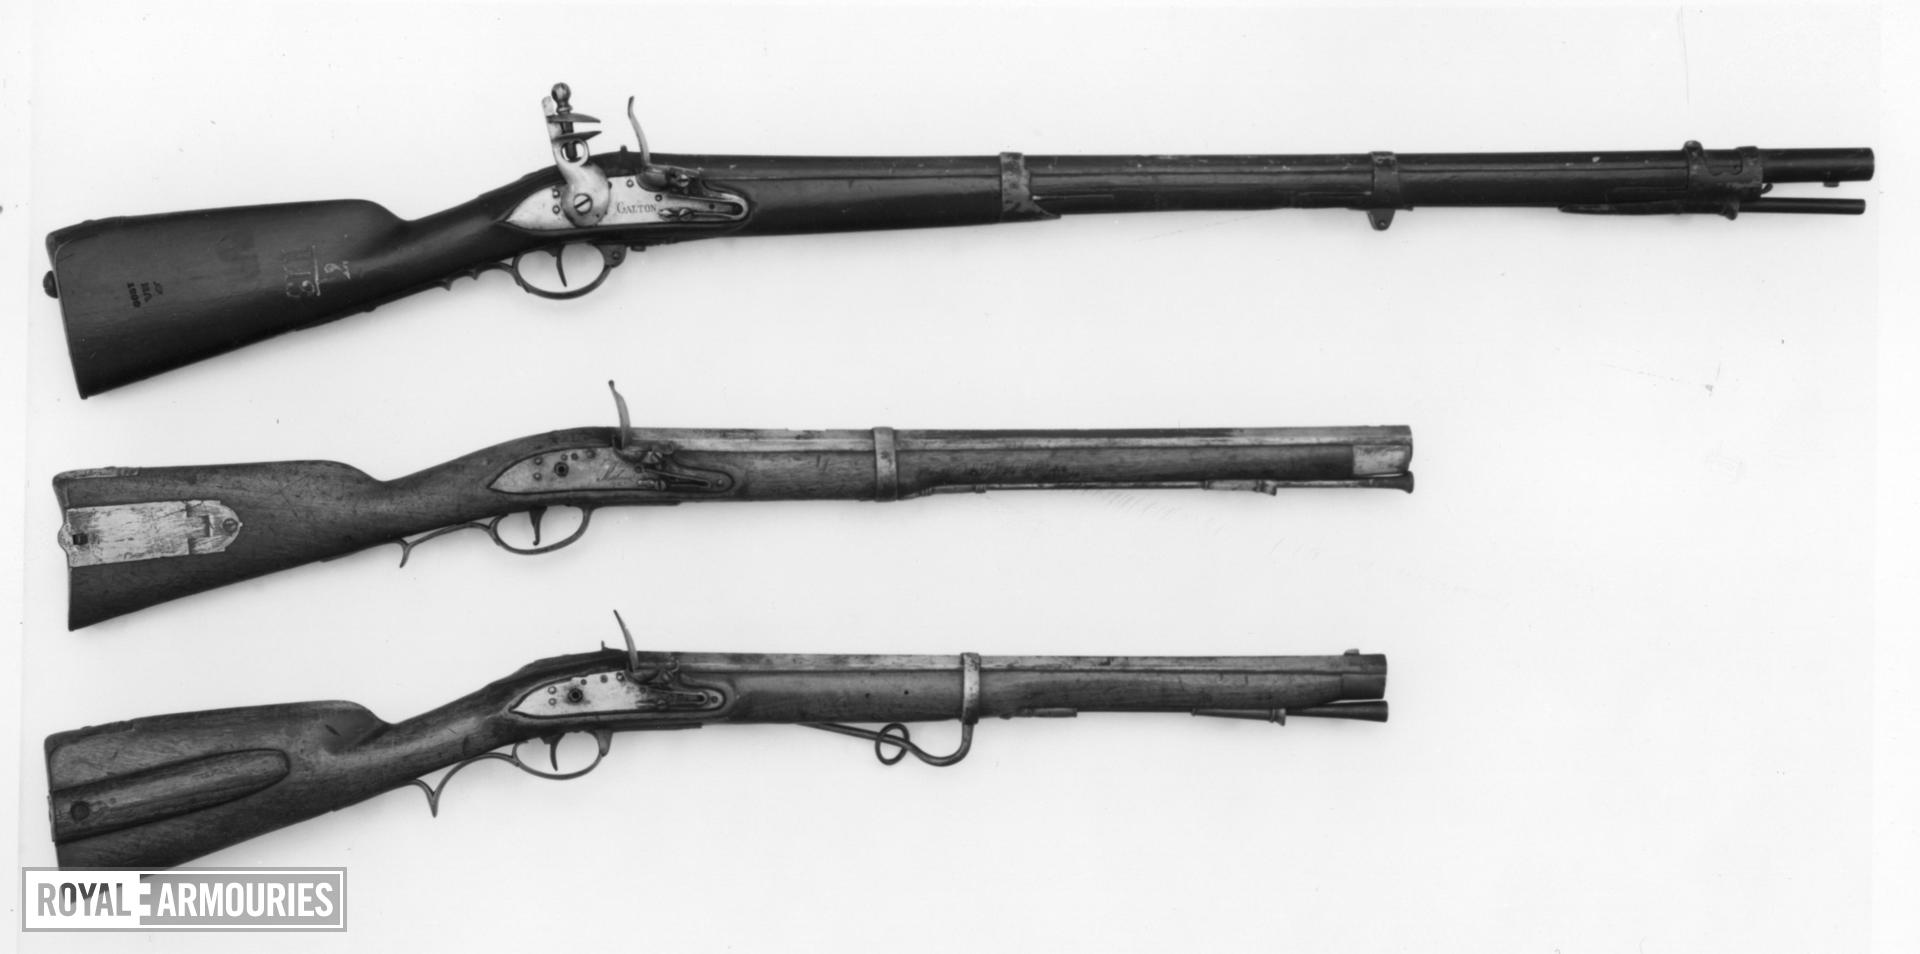 Flintlock muzzle-loading rifle - Model 1777